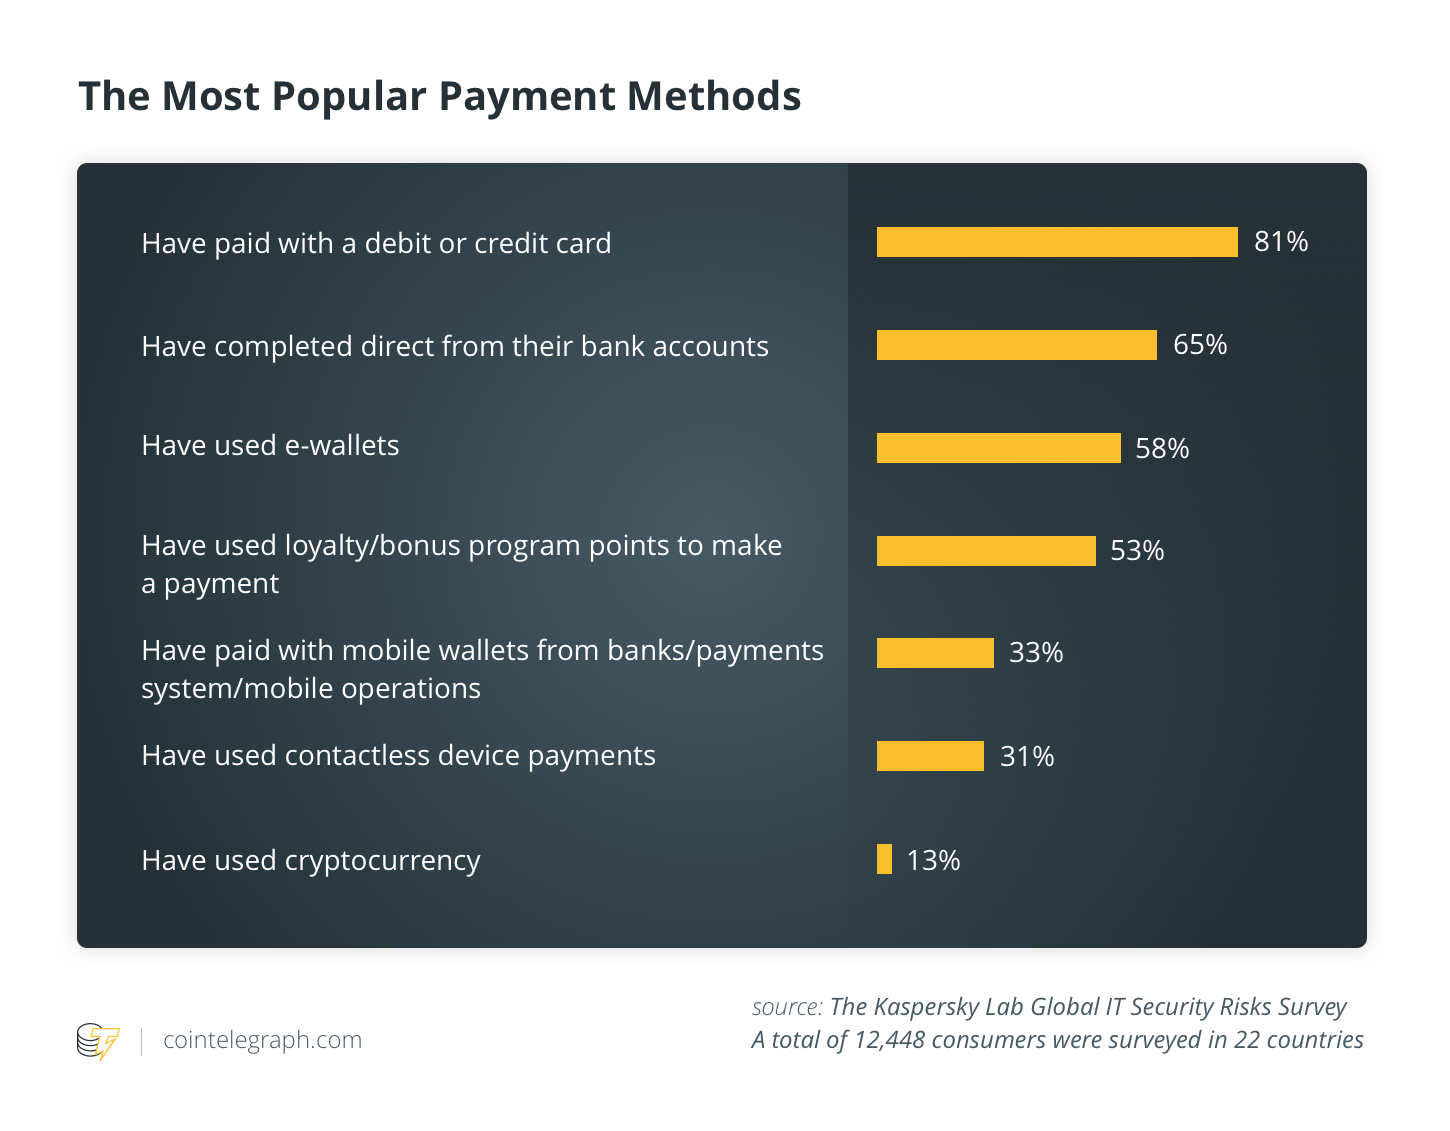 The most popular payment methods